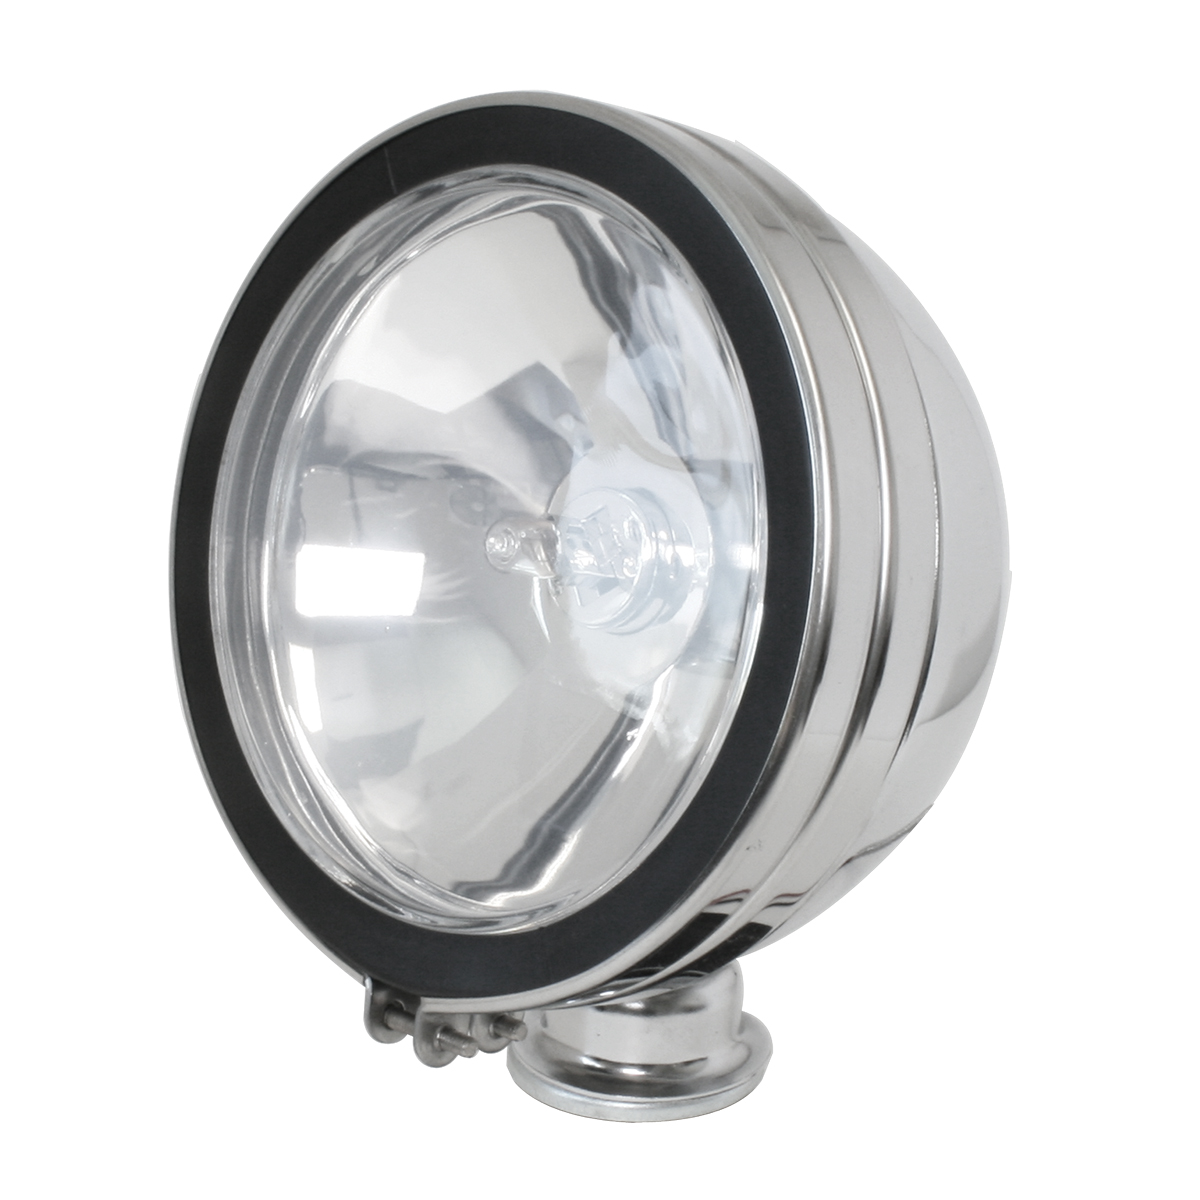 "#80620 6"" Chrome Plated Off-Road Light 55 Watts - Clear"